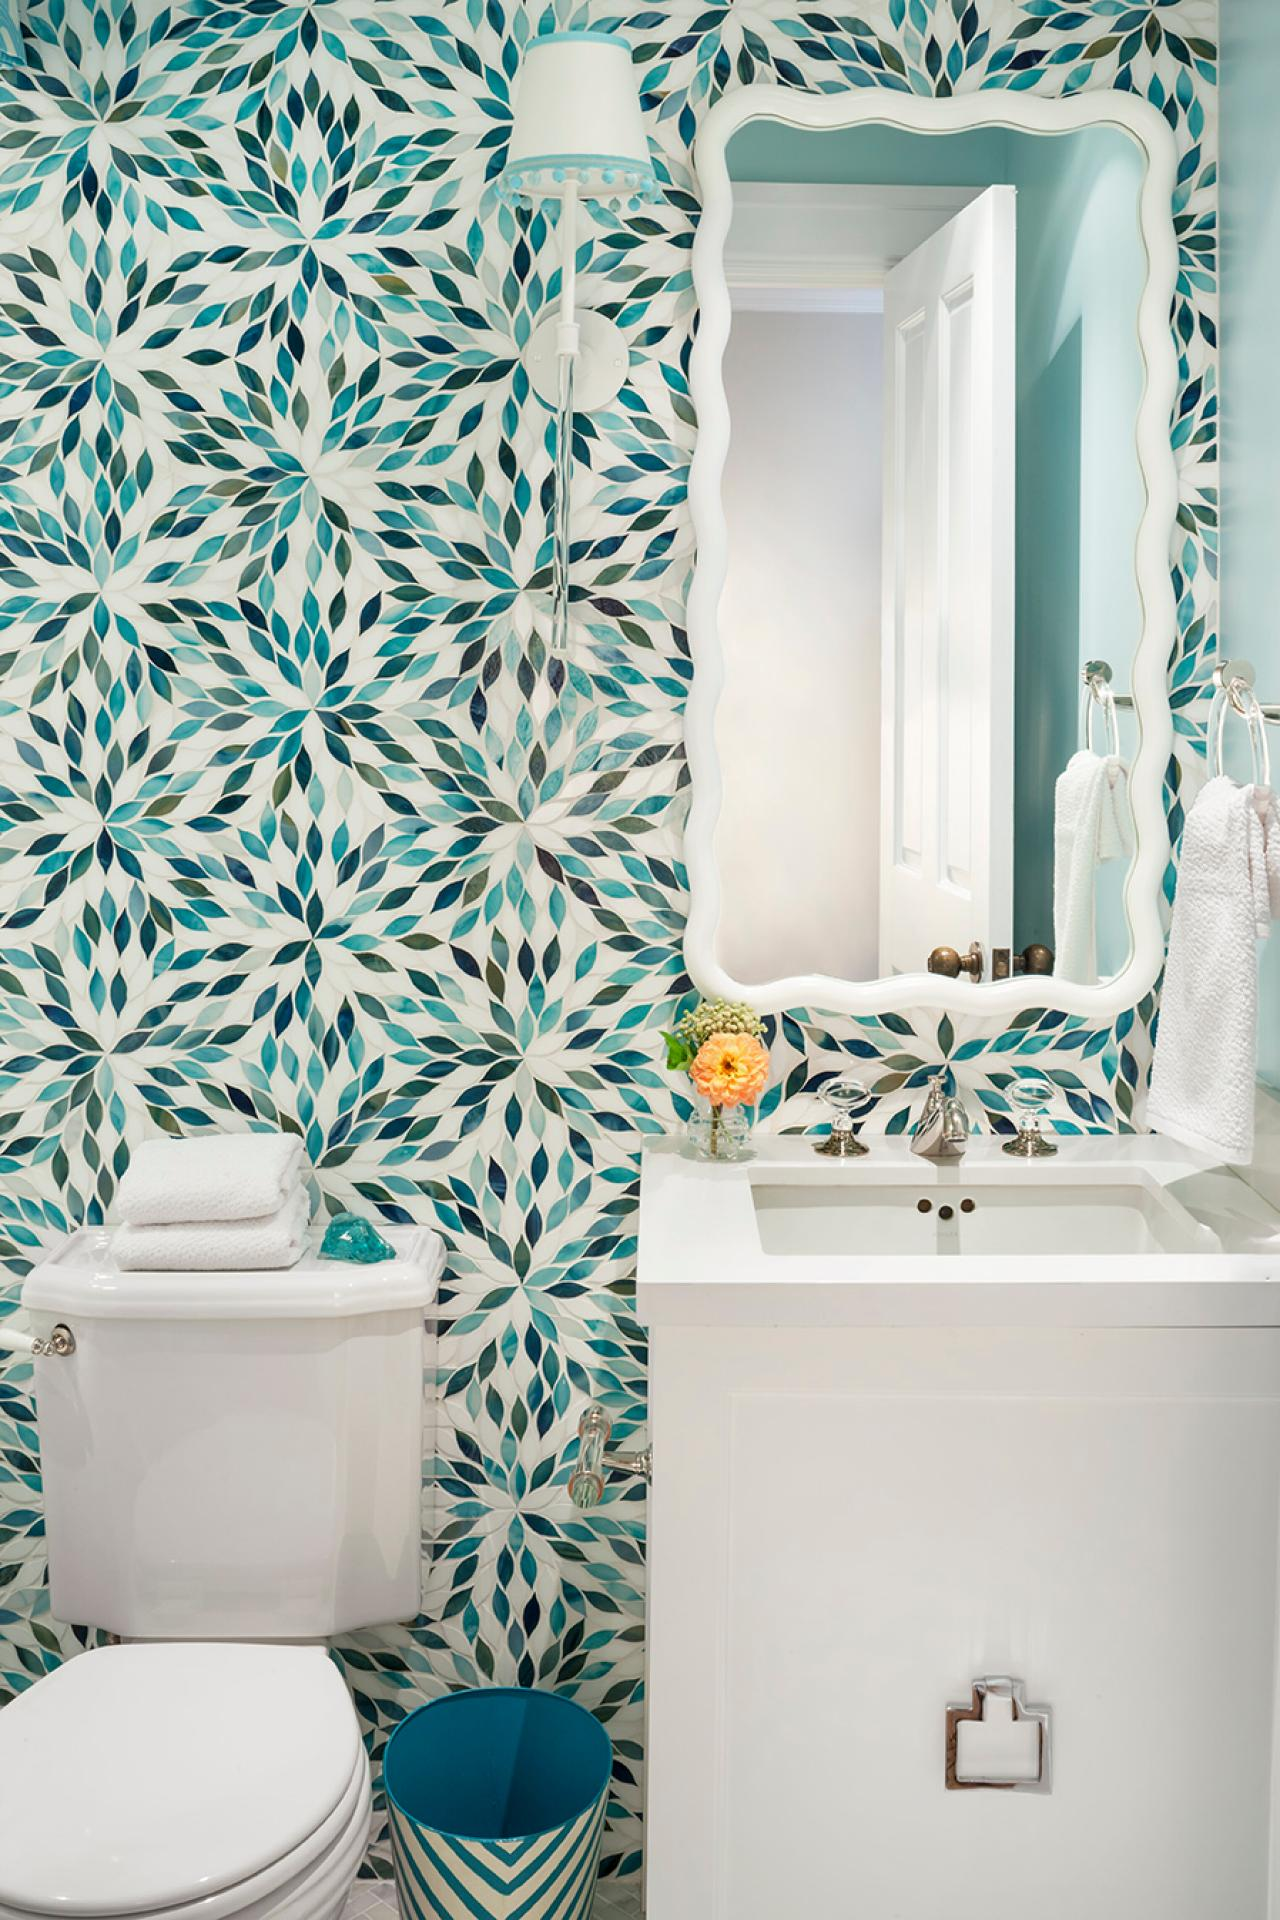 Bathroom Tiles Wallpaper top 20 bathroom tile trends of 2017 | hgtv's decorating & design